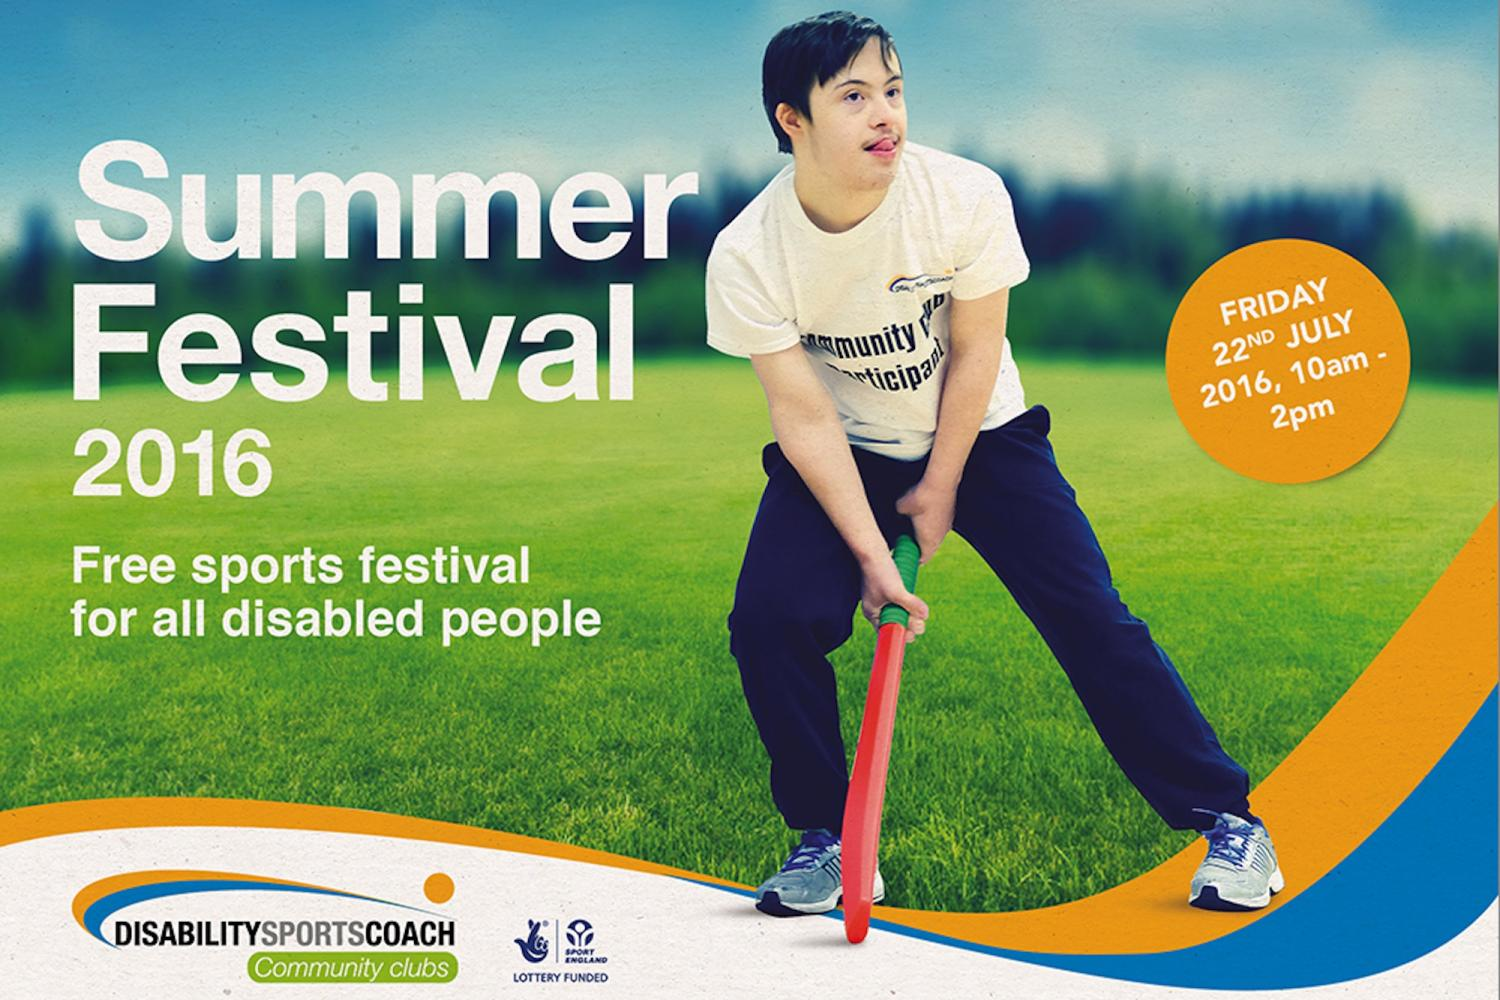 DSC Summer Festival 2016 - Free Sports Festival for all disabled people